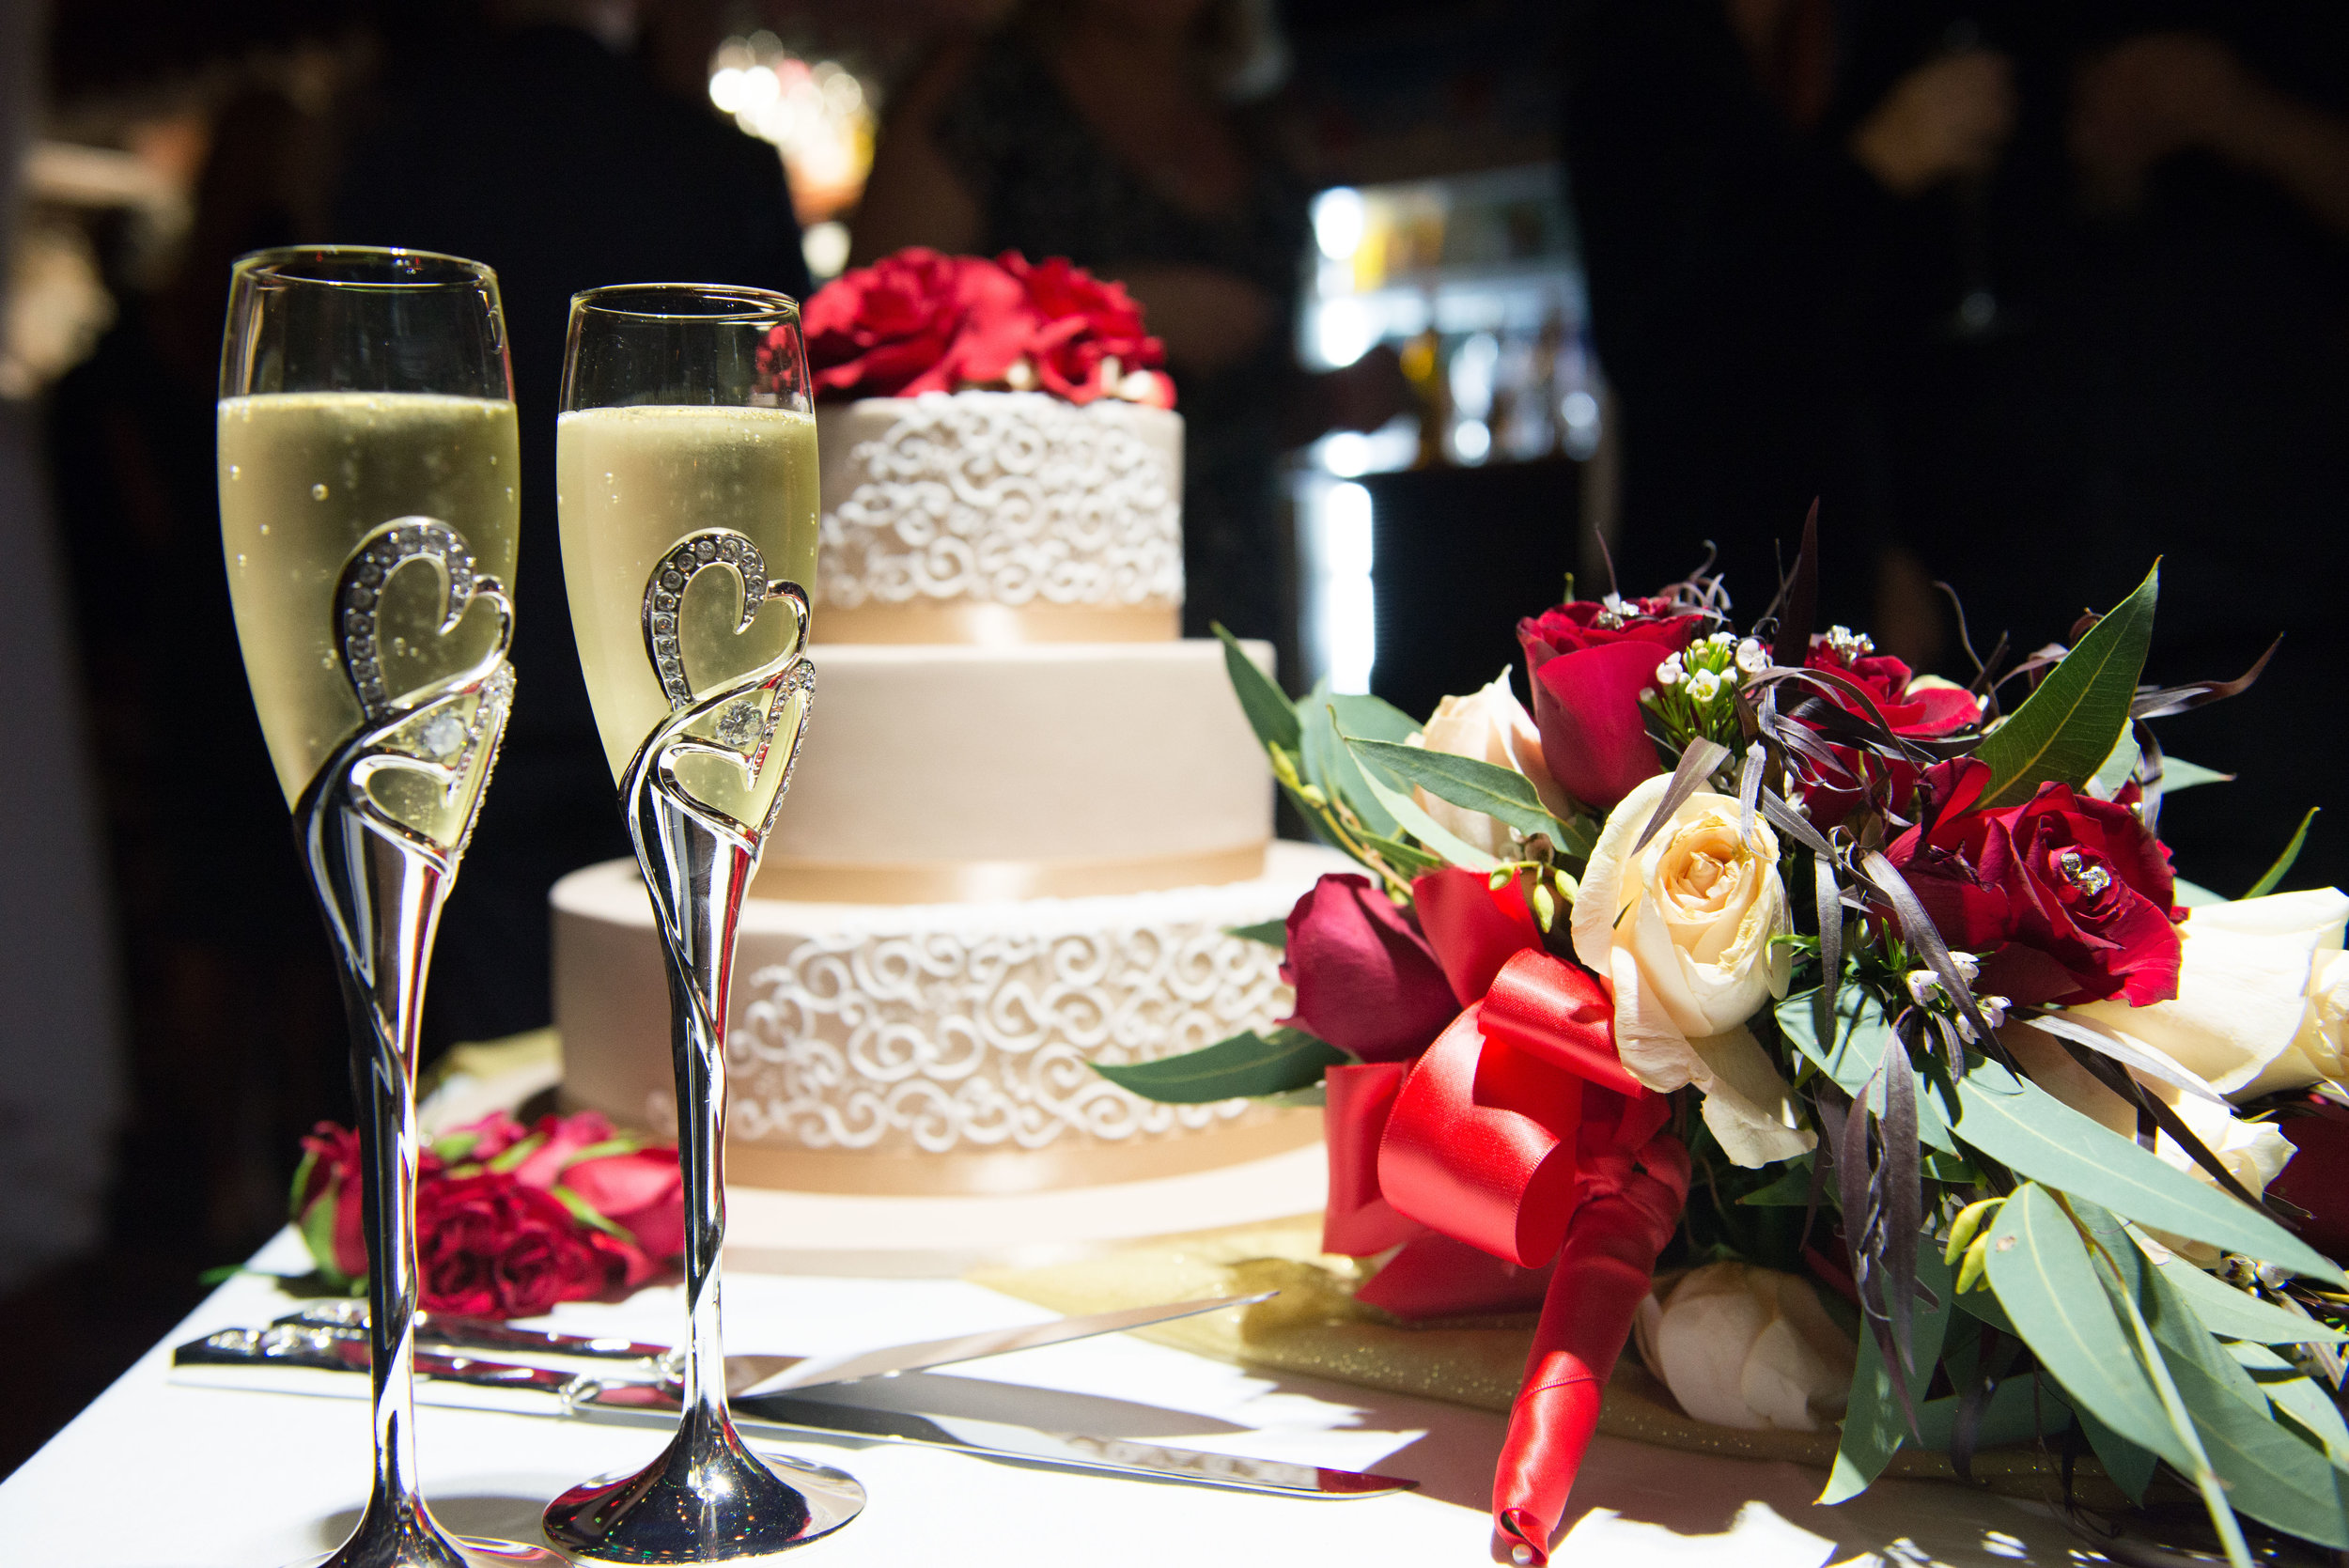 Belle wedding cake glasses champagne flowers brindley.jpg